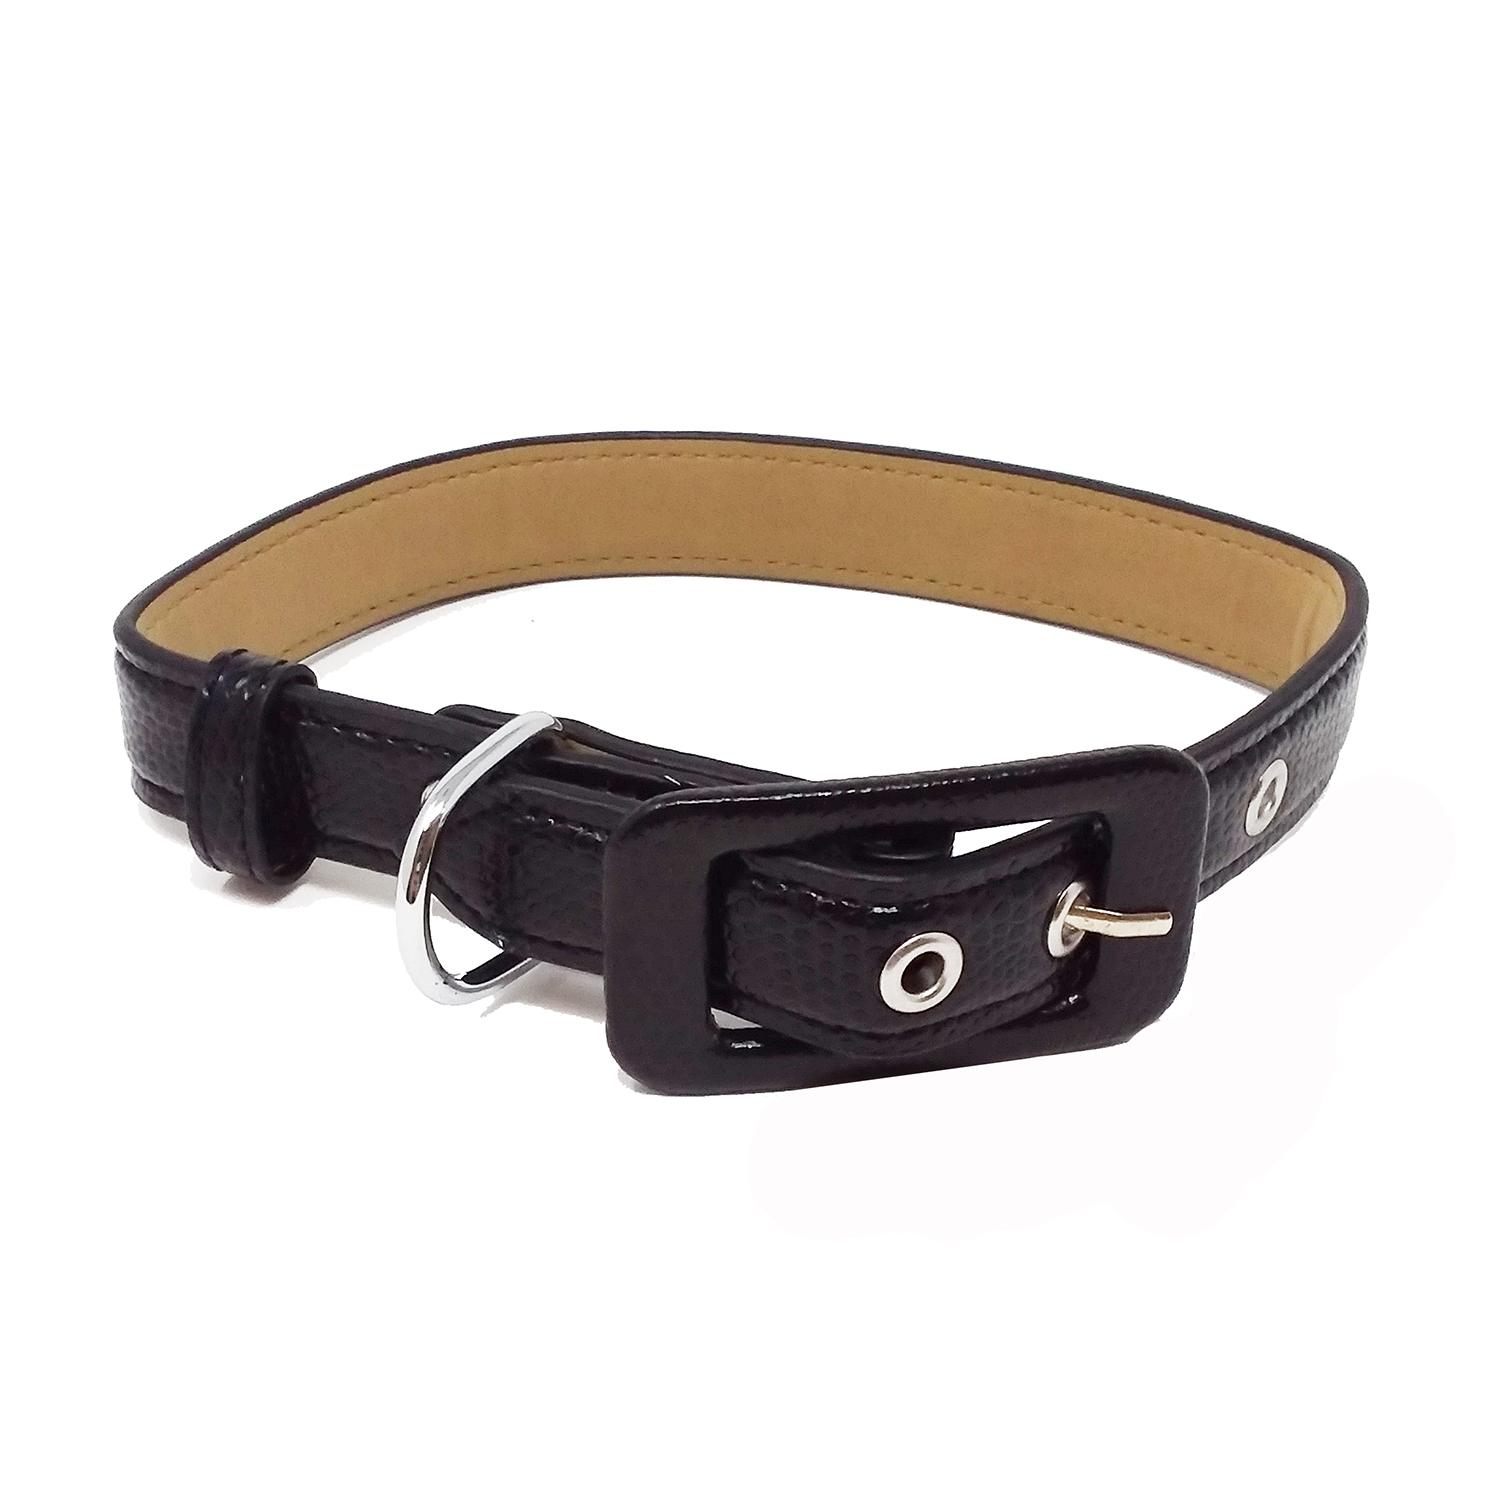 Pebbled Faux Leather Dog Collar by Cha-Cha Couture - Black